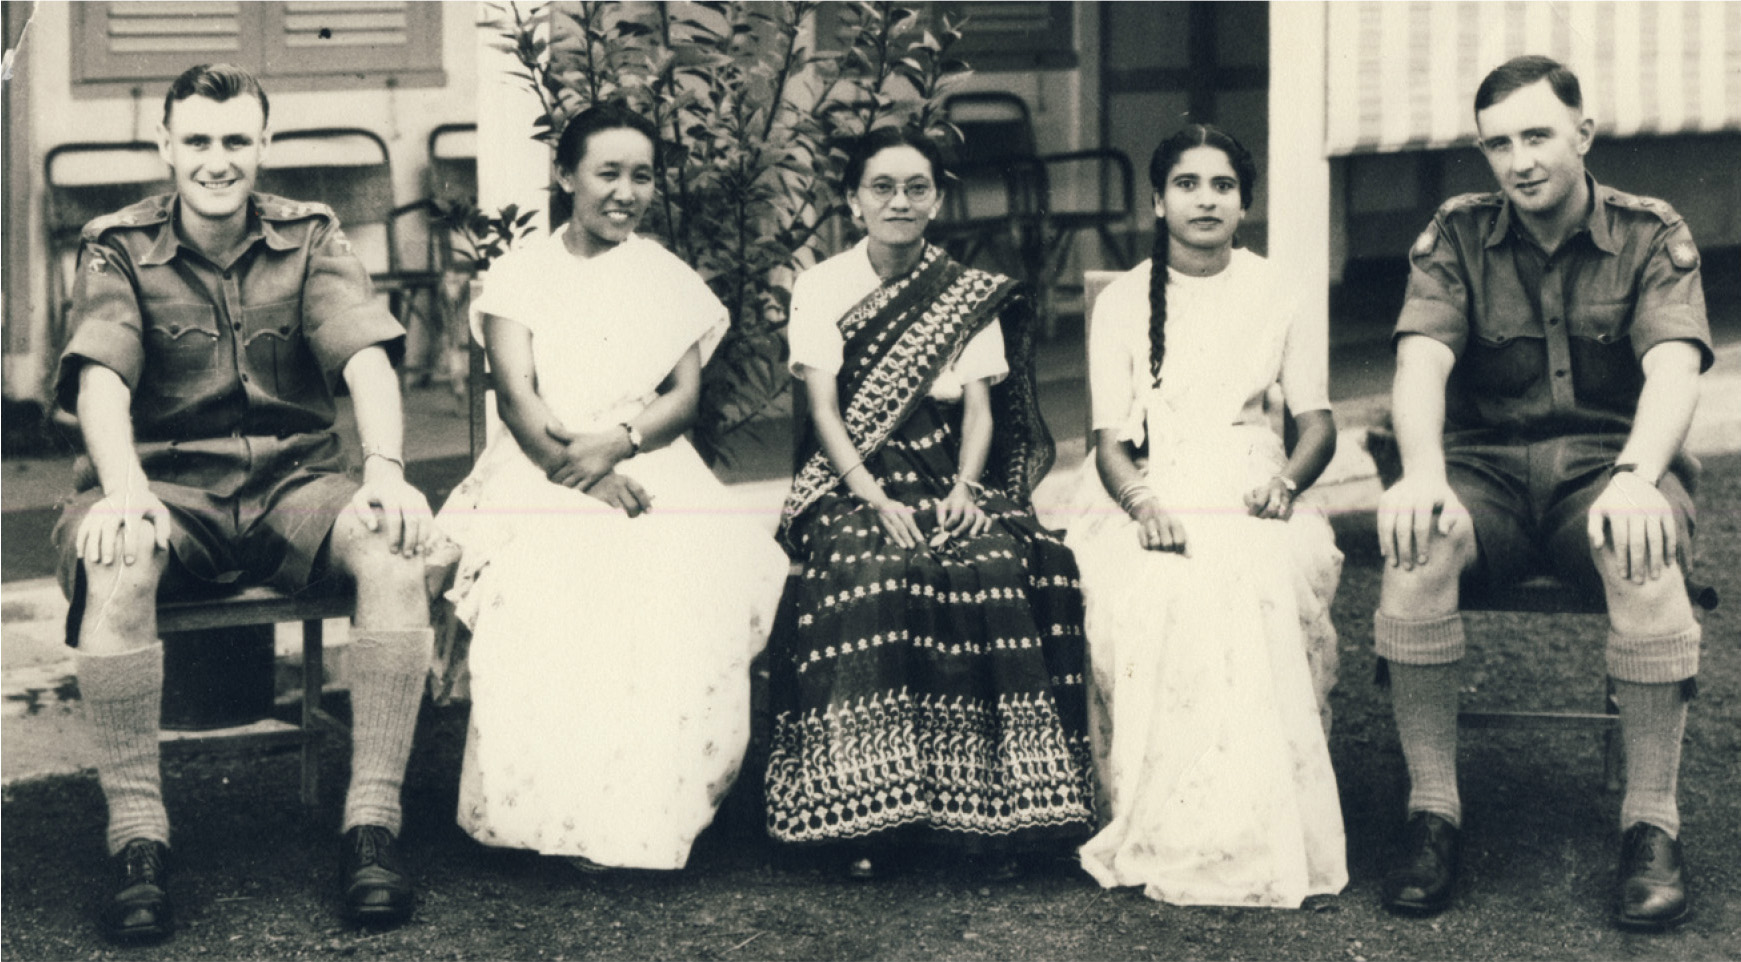 L–R: Dr Angus Rae in Malaya in 1956 with nurses Domashiring Llama (Tibet), Sabitri Devi Tamang (Nepal), Matilda Mamon (India), and Dr Vincent Sweeney (Scotland).